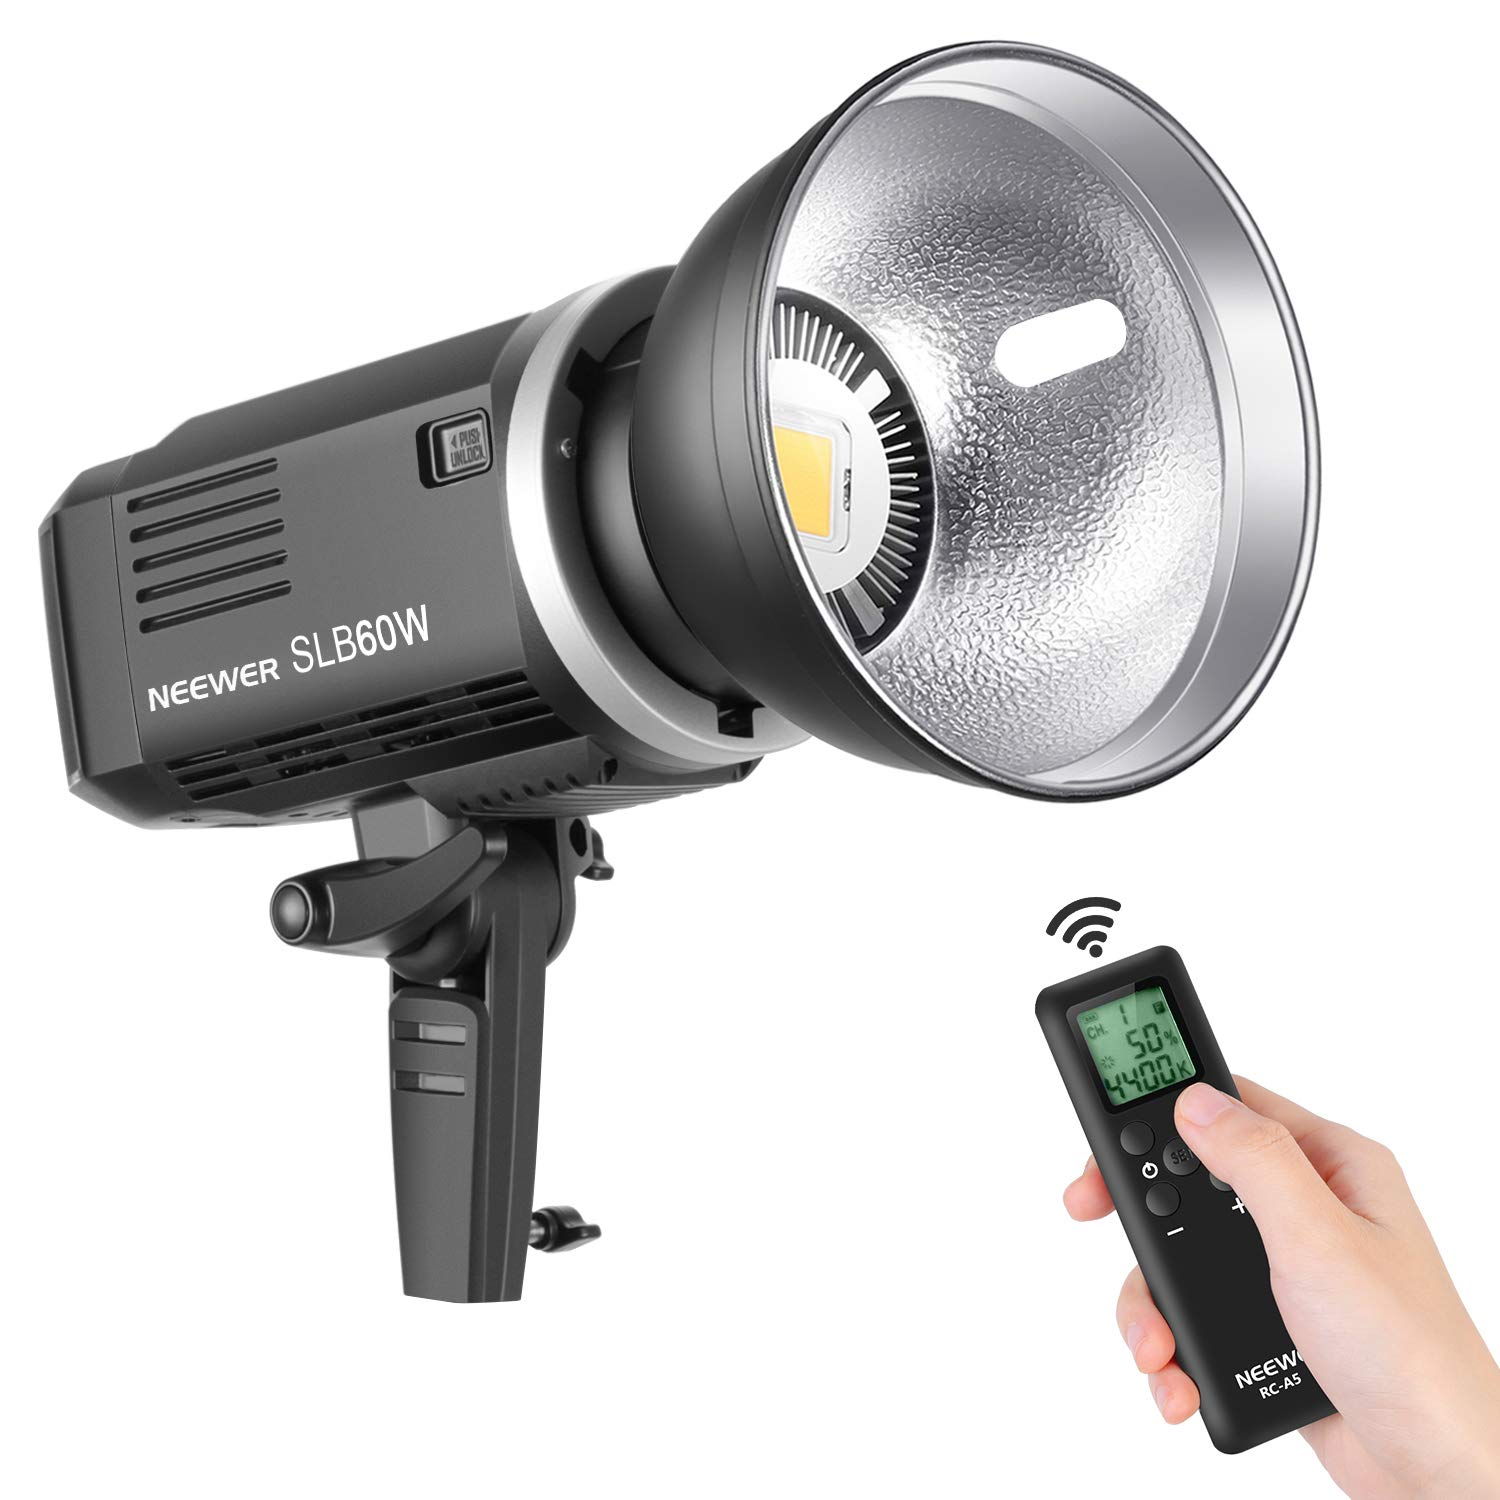 Neewer SLB60W LED Video Light White 5600K Version,60W CRI 93+,TLCI 95+ with Remote Control and Reflector,Continuous Lighting Bowens Mount with 8700mAH Lithium Battery for Photography Outdoor Shooting